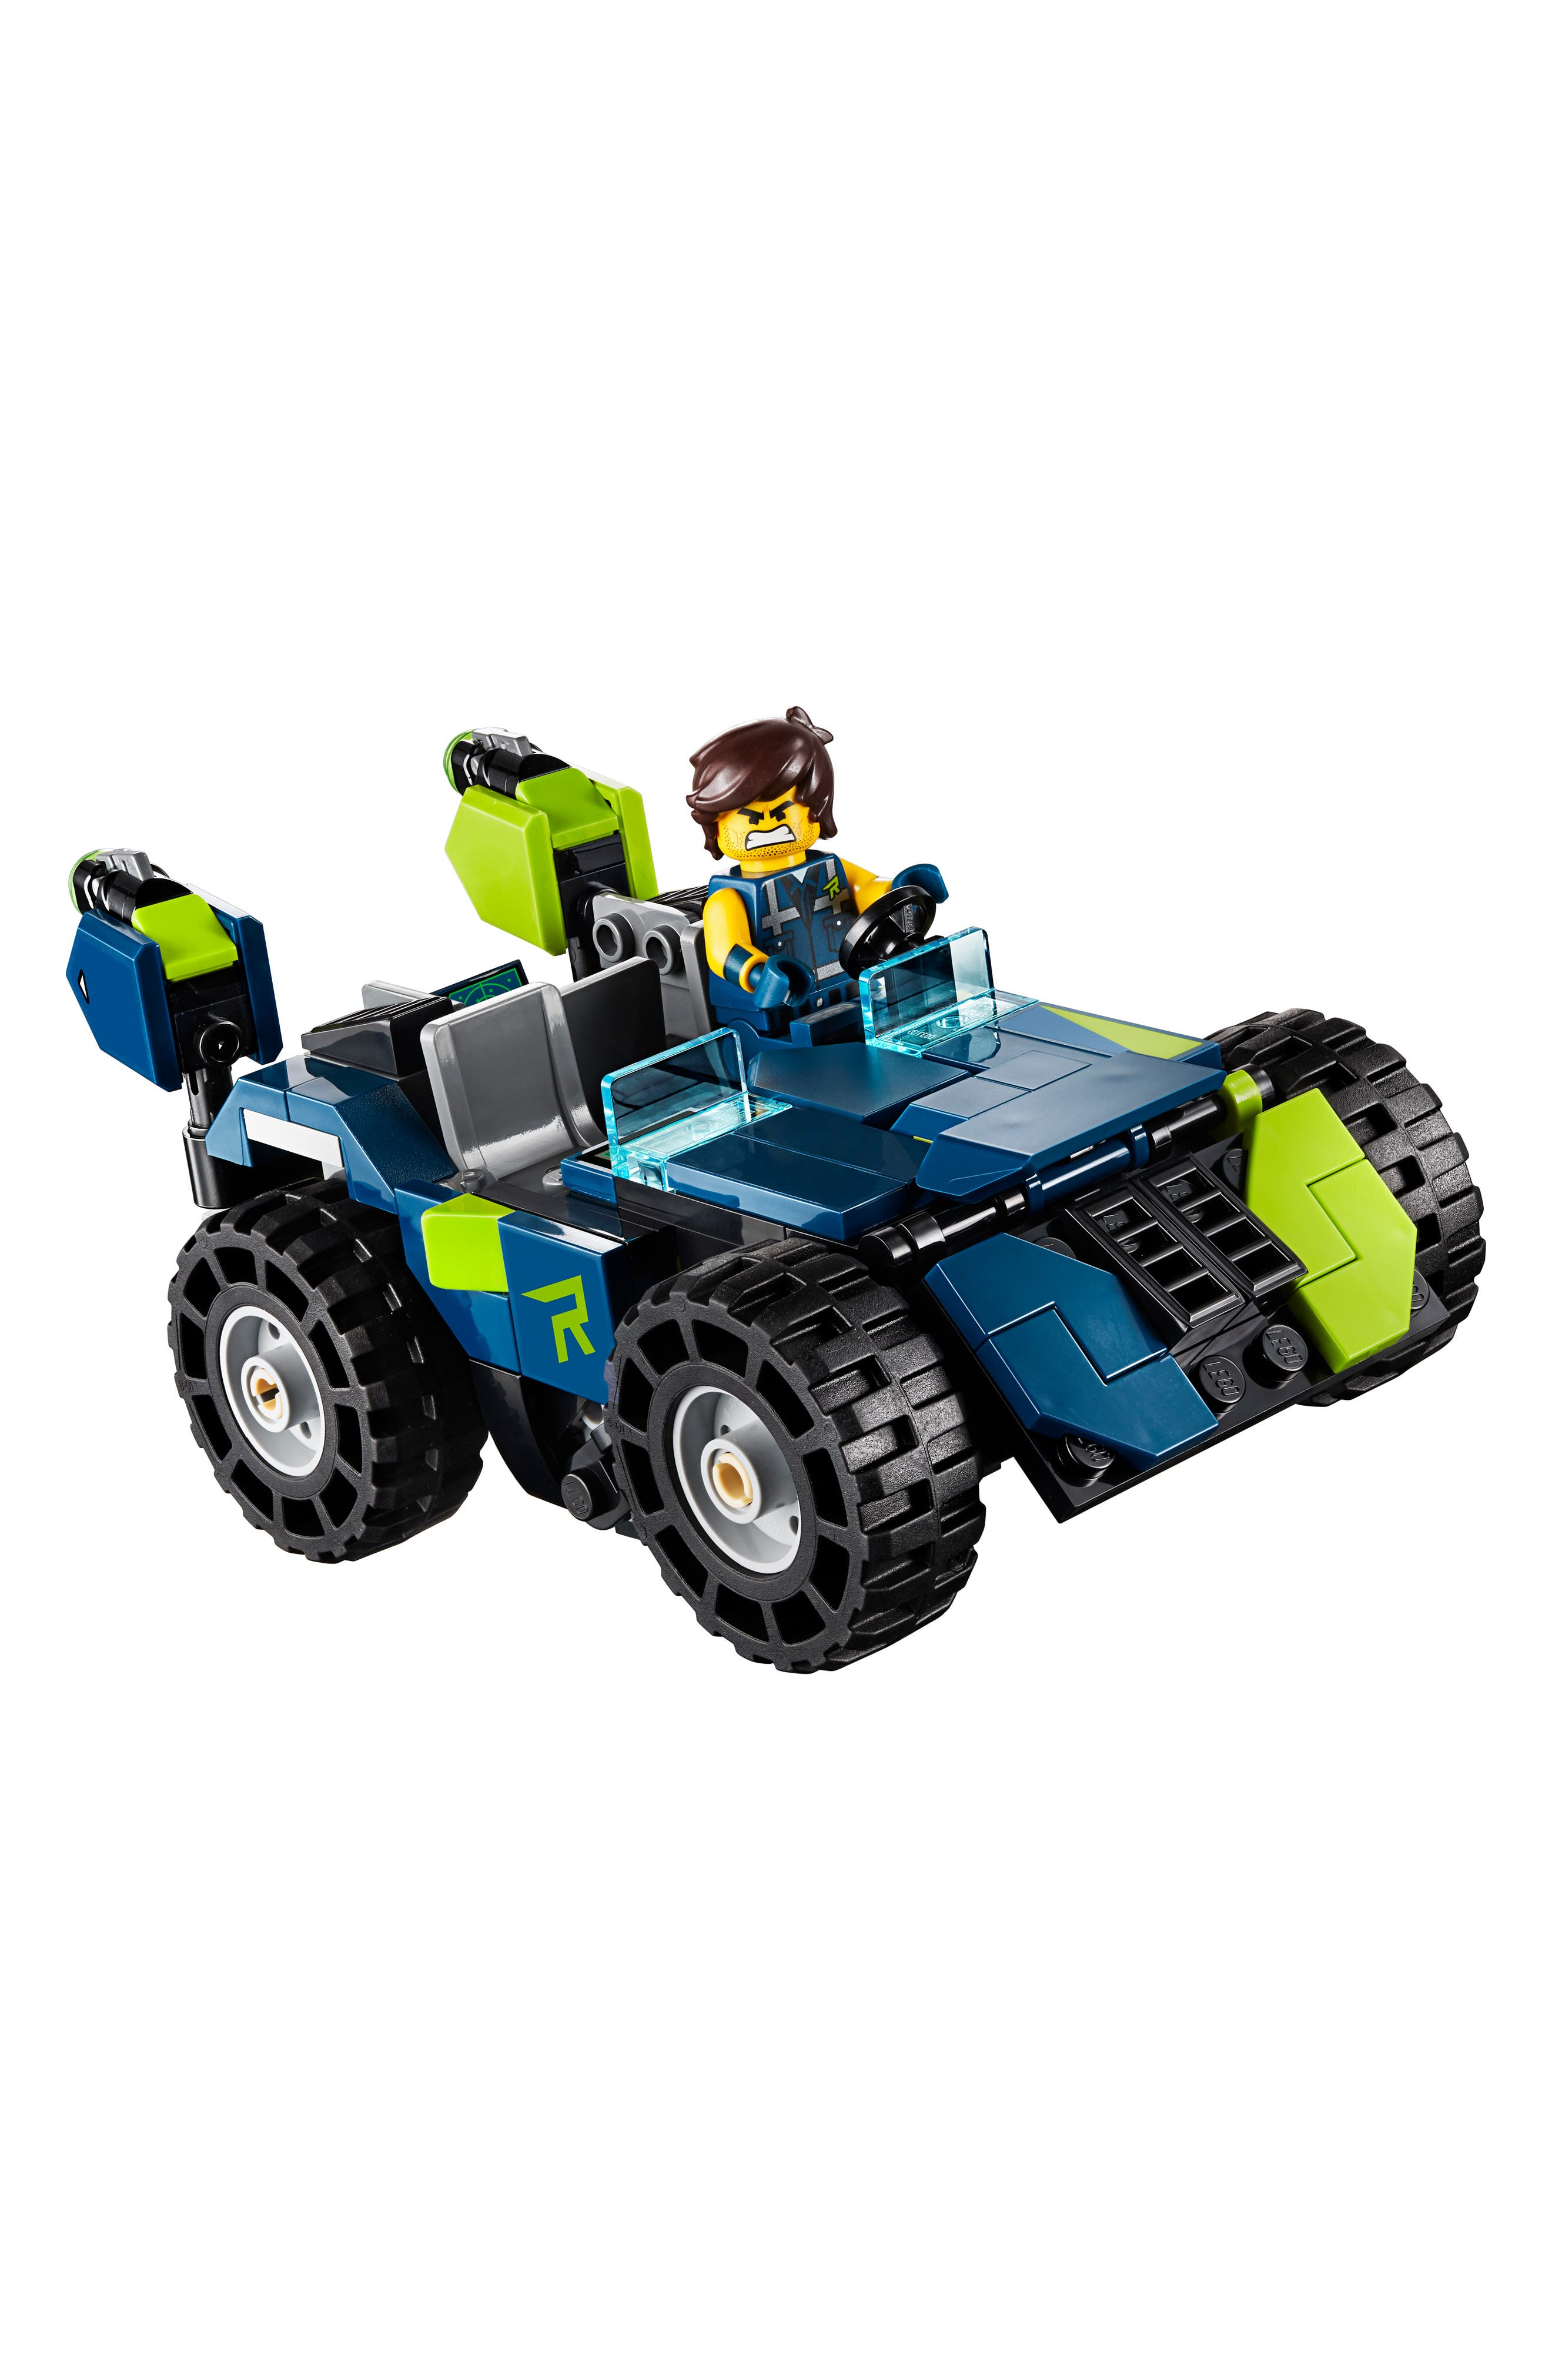 LEGO<SUP>®</SUP>,                             The LEGO<sup>®</sup> Movie 2 Rex's 3-in-1 Rex-treme Offroader Toy - 70826,                             Alternate thumbnail 6, color,                             960